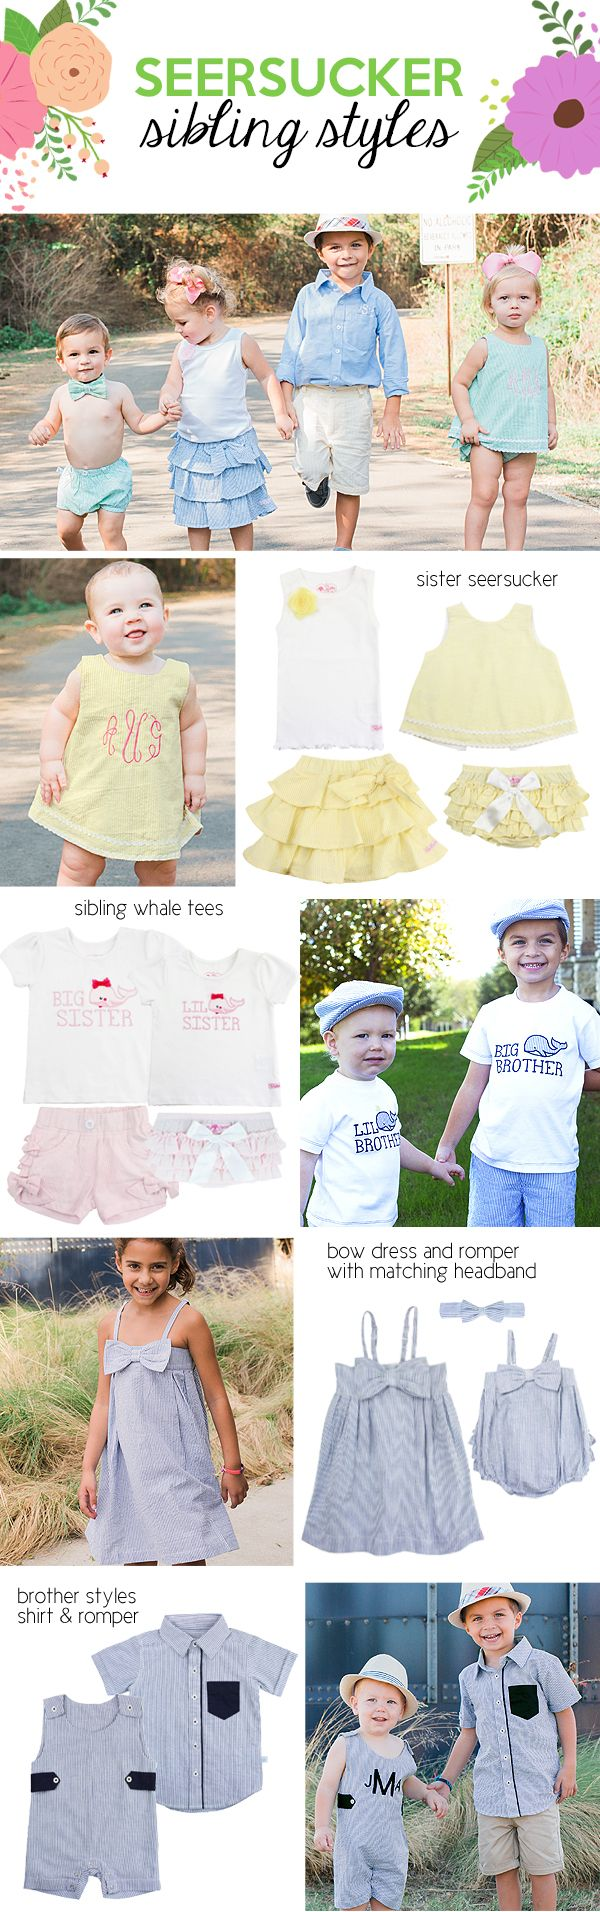 RuffleButts & RuggedButts are boutique brands for kiddos offering fun & stylish apparel perfect for your little siblings!